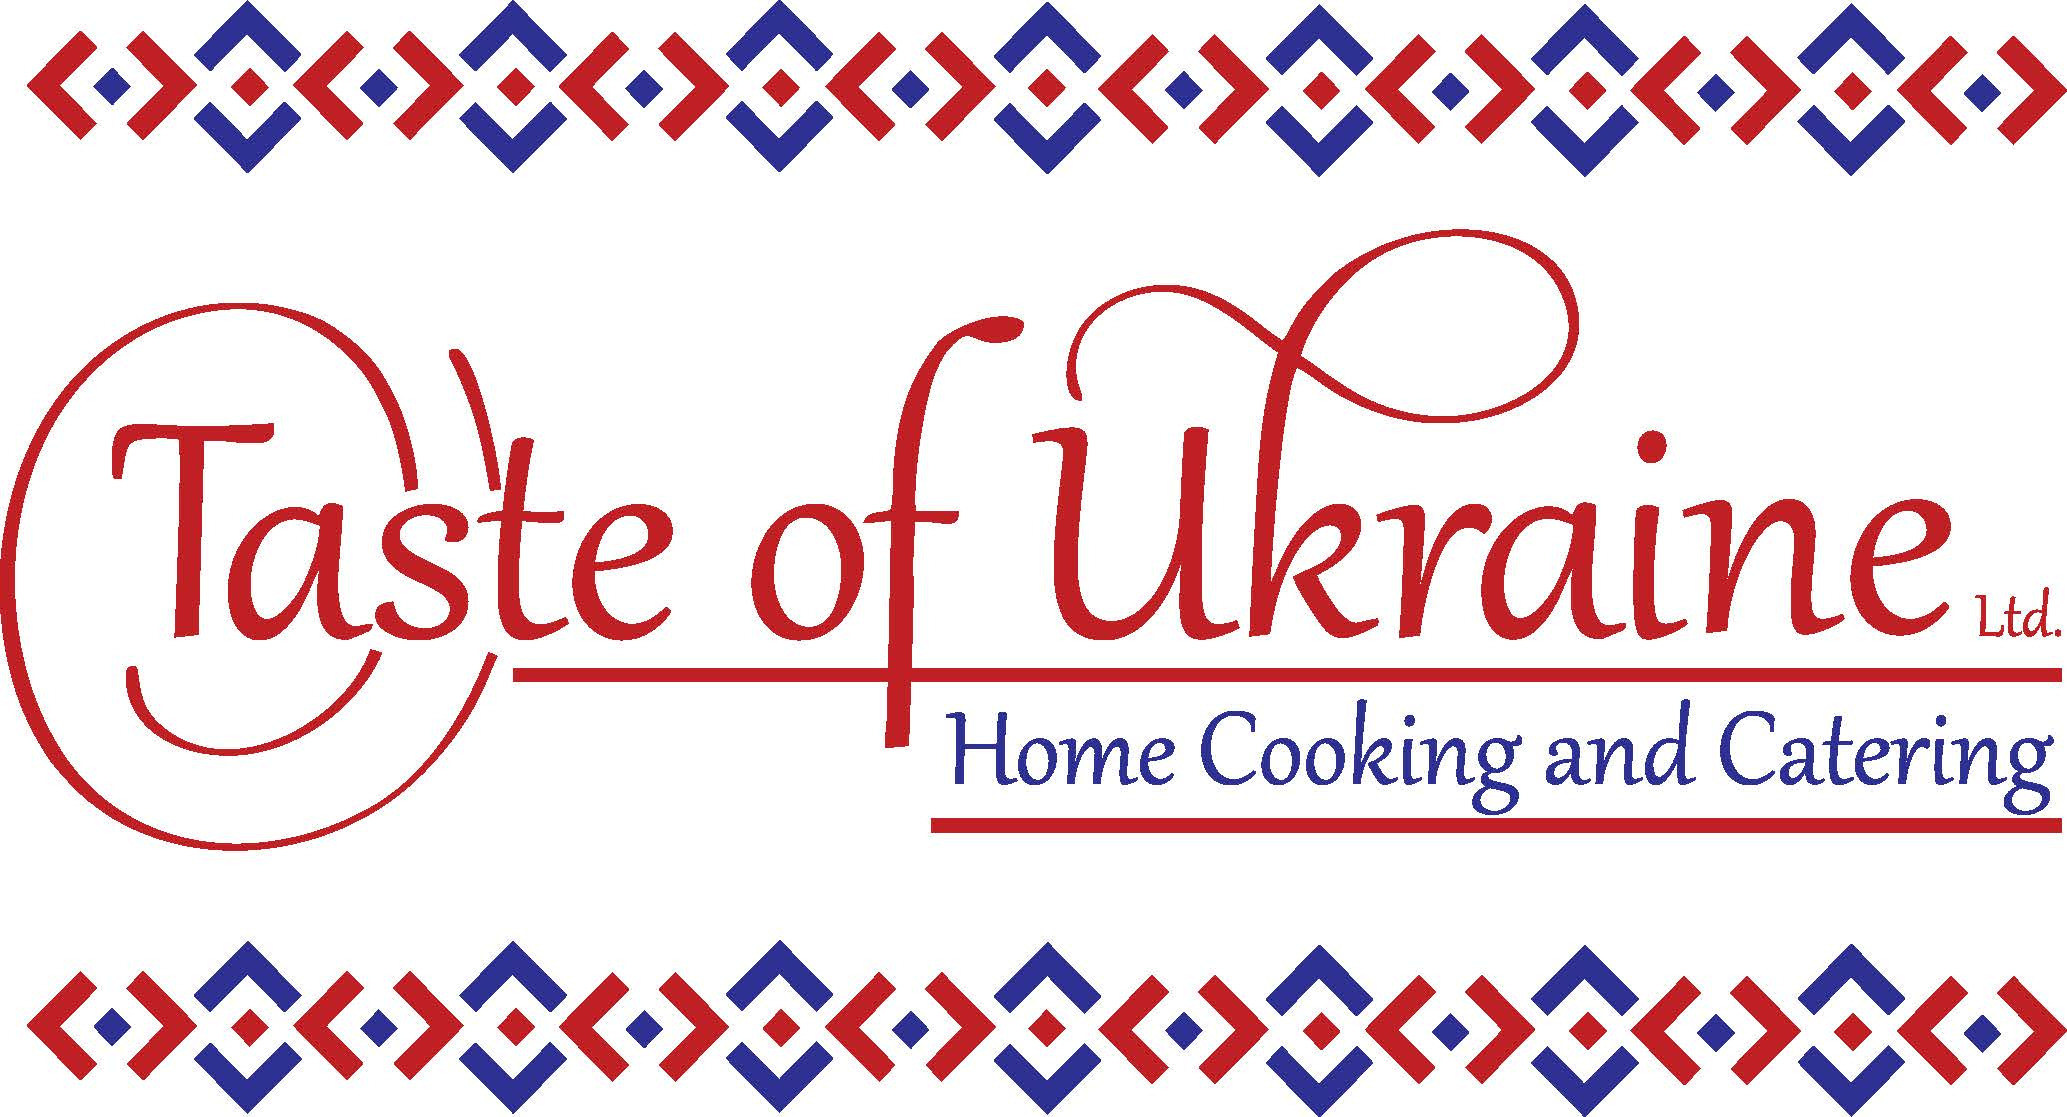 Taste of Ukraine Ltd.